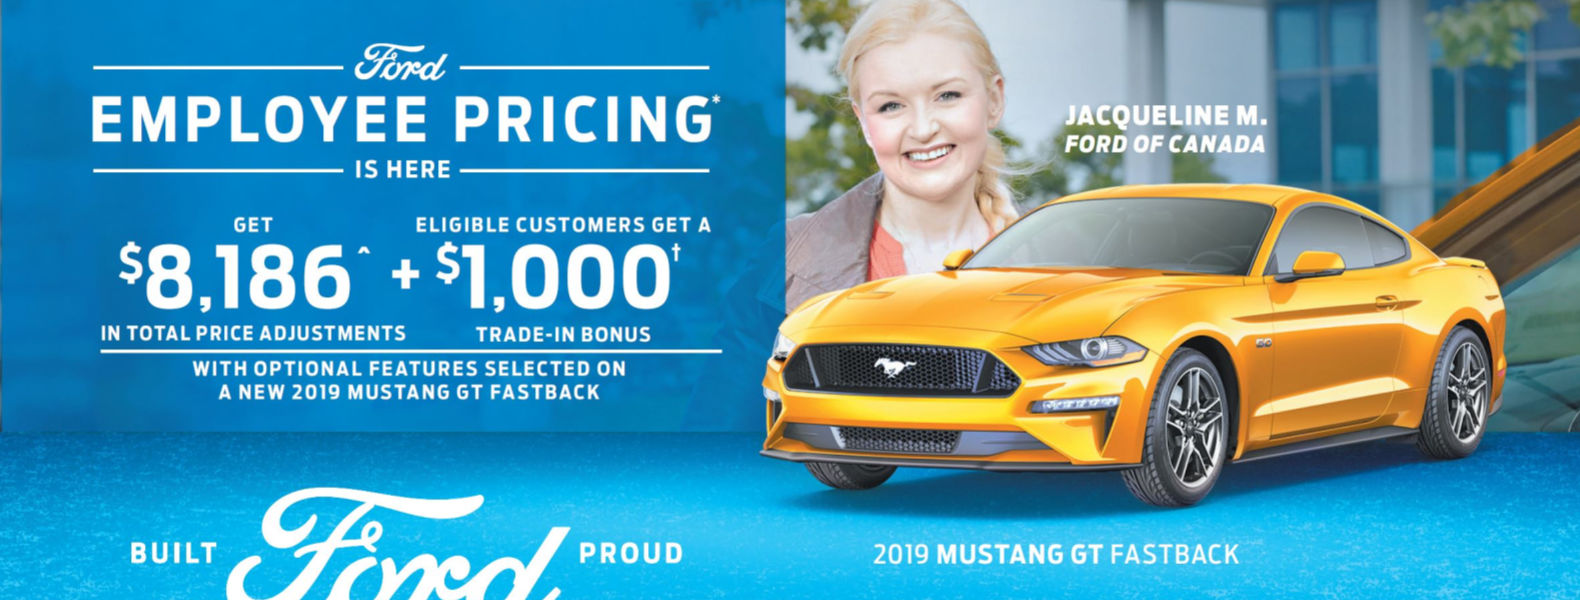 Employee Pricing Ford Mustang Smiths Falls